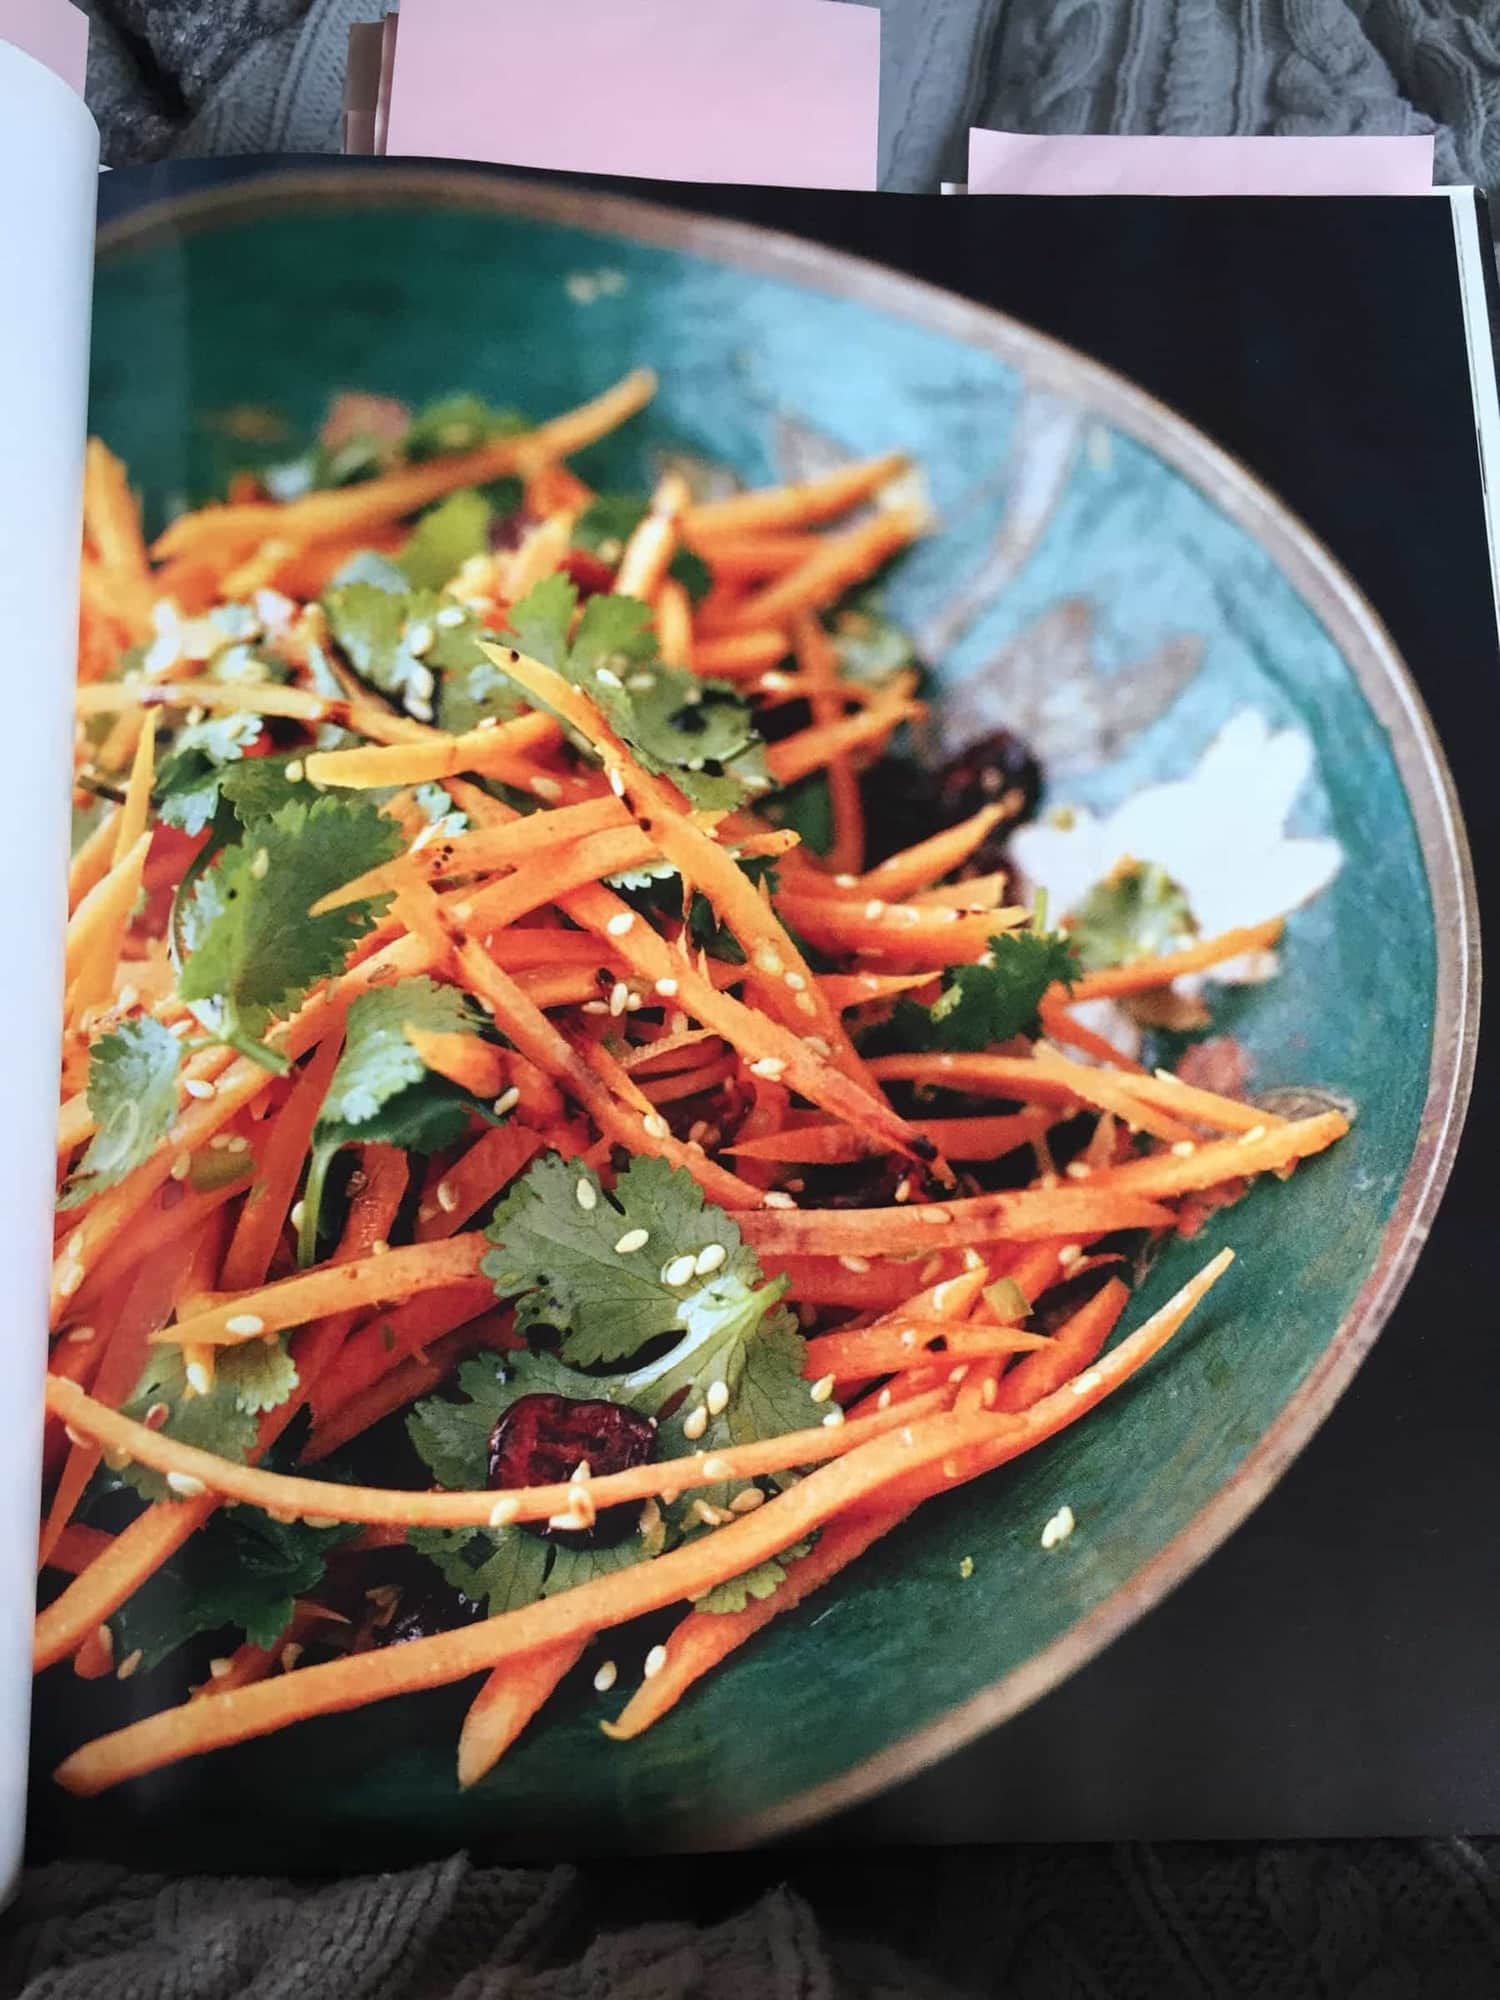 Tangy, Tart, Hot, and Sweet Cookbook by Padma Lakshmi - Inspiring food journey and mouthwatering recipes - Cookbooks I love by Very Veganish